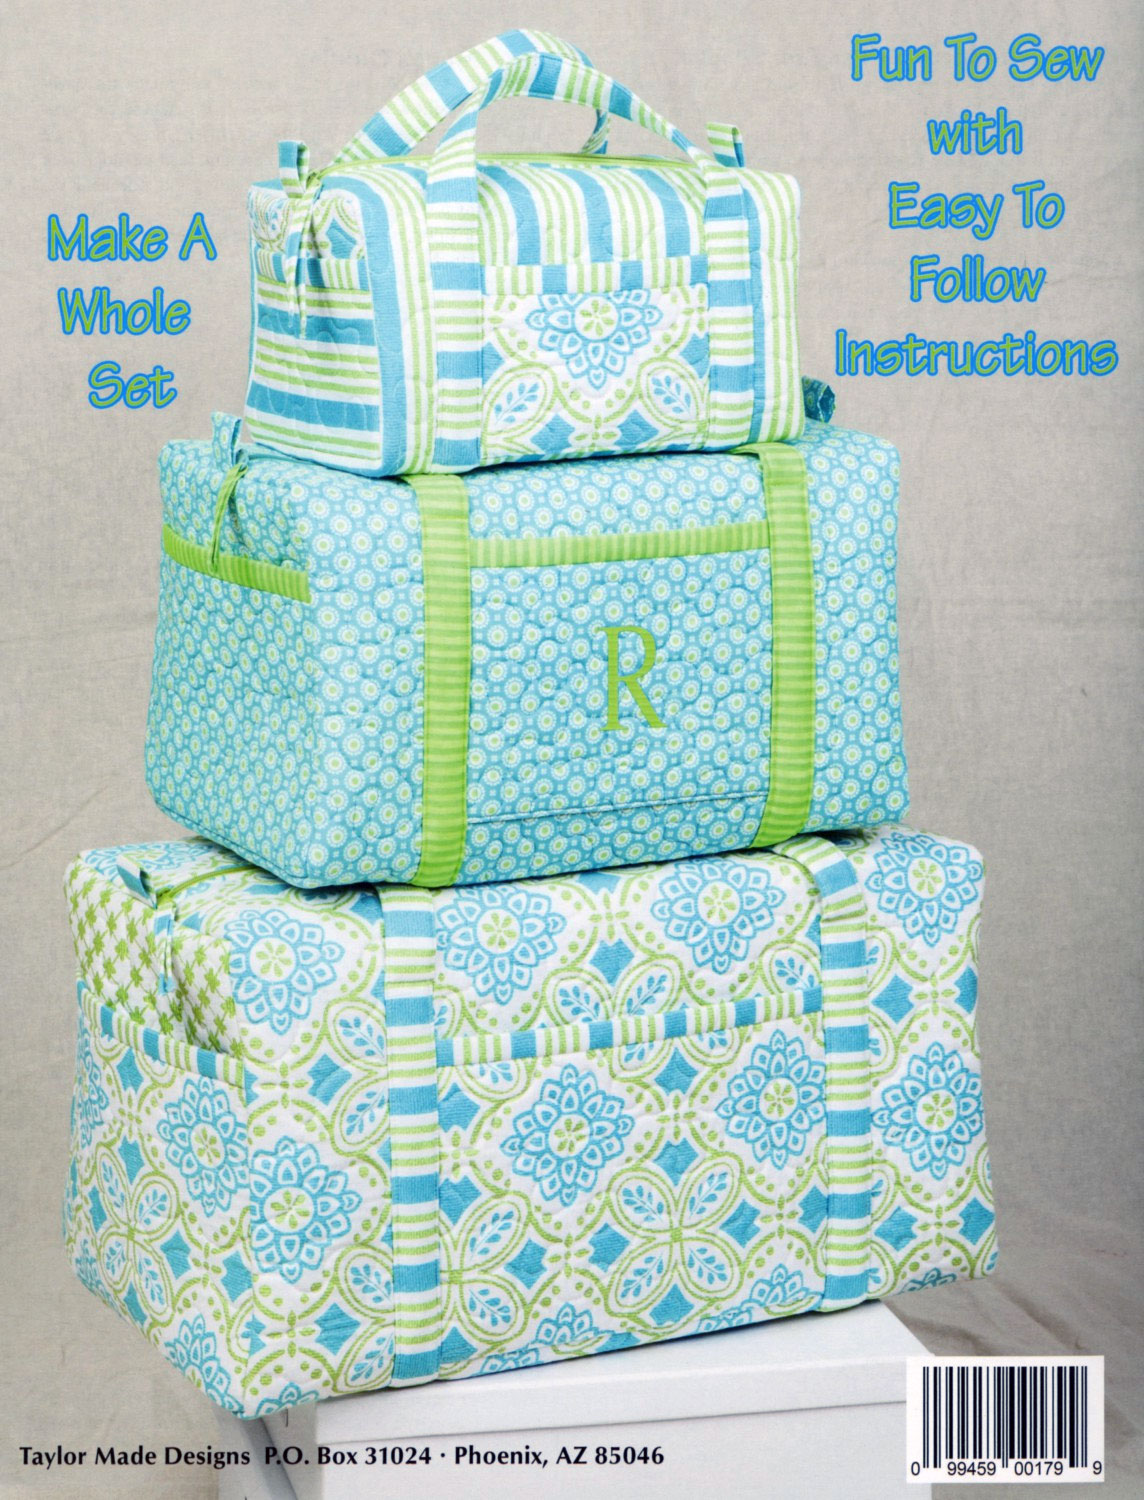 Duffle-Bags-sewing-pattern-book-Taylor-Made-Designs-back